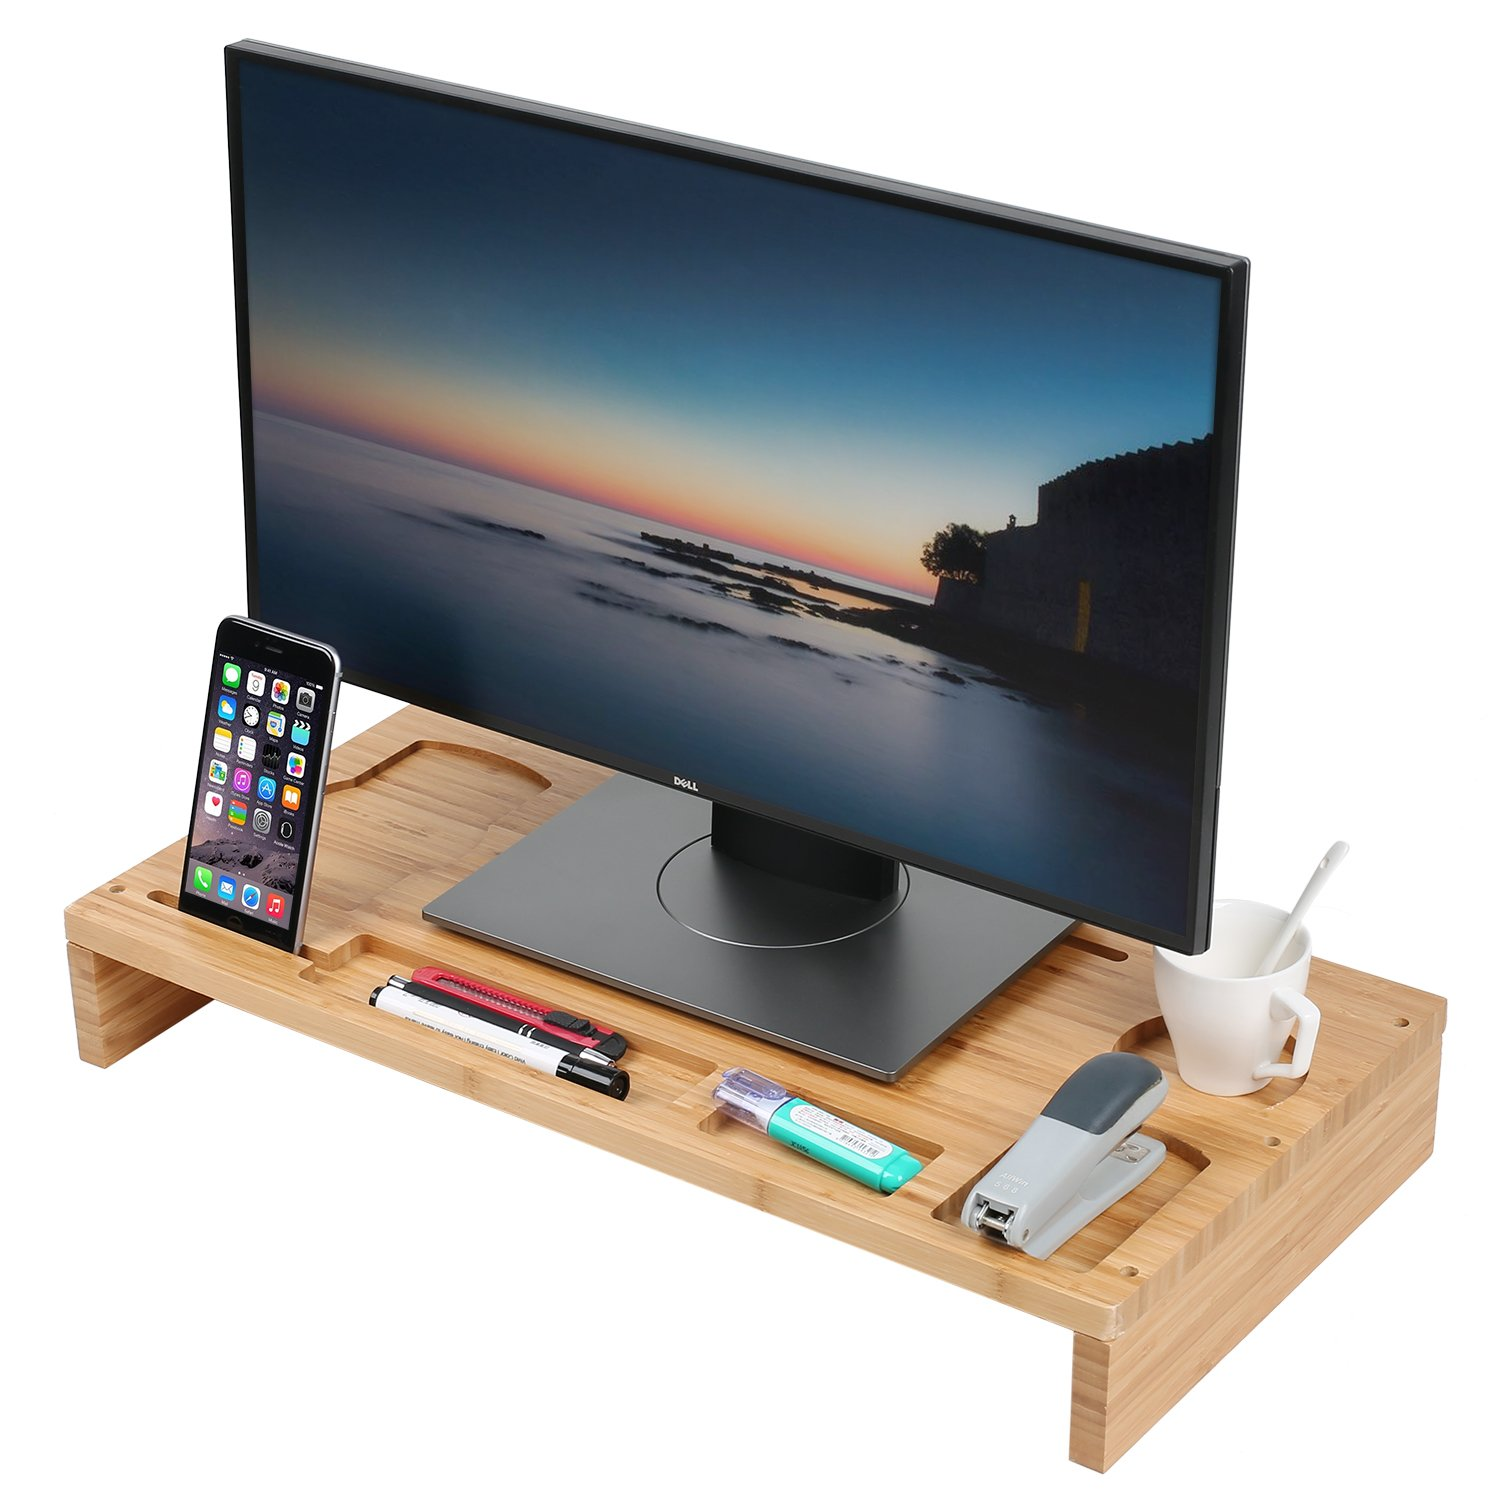 Bamboo Computer Monitor Stand Riser, Wooden Desk Organizer, Laptop Riser Shelves, Laptop Ipad Cellphone TV Printer Stand Holder with Slots for Office Supplies and Storage Space for Keyboard and Mouse TILEMALL